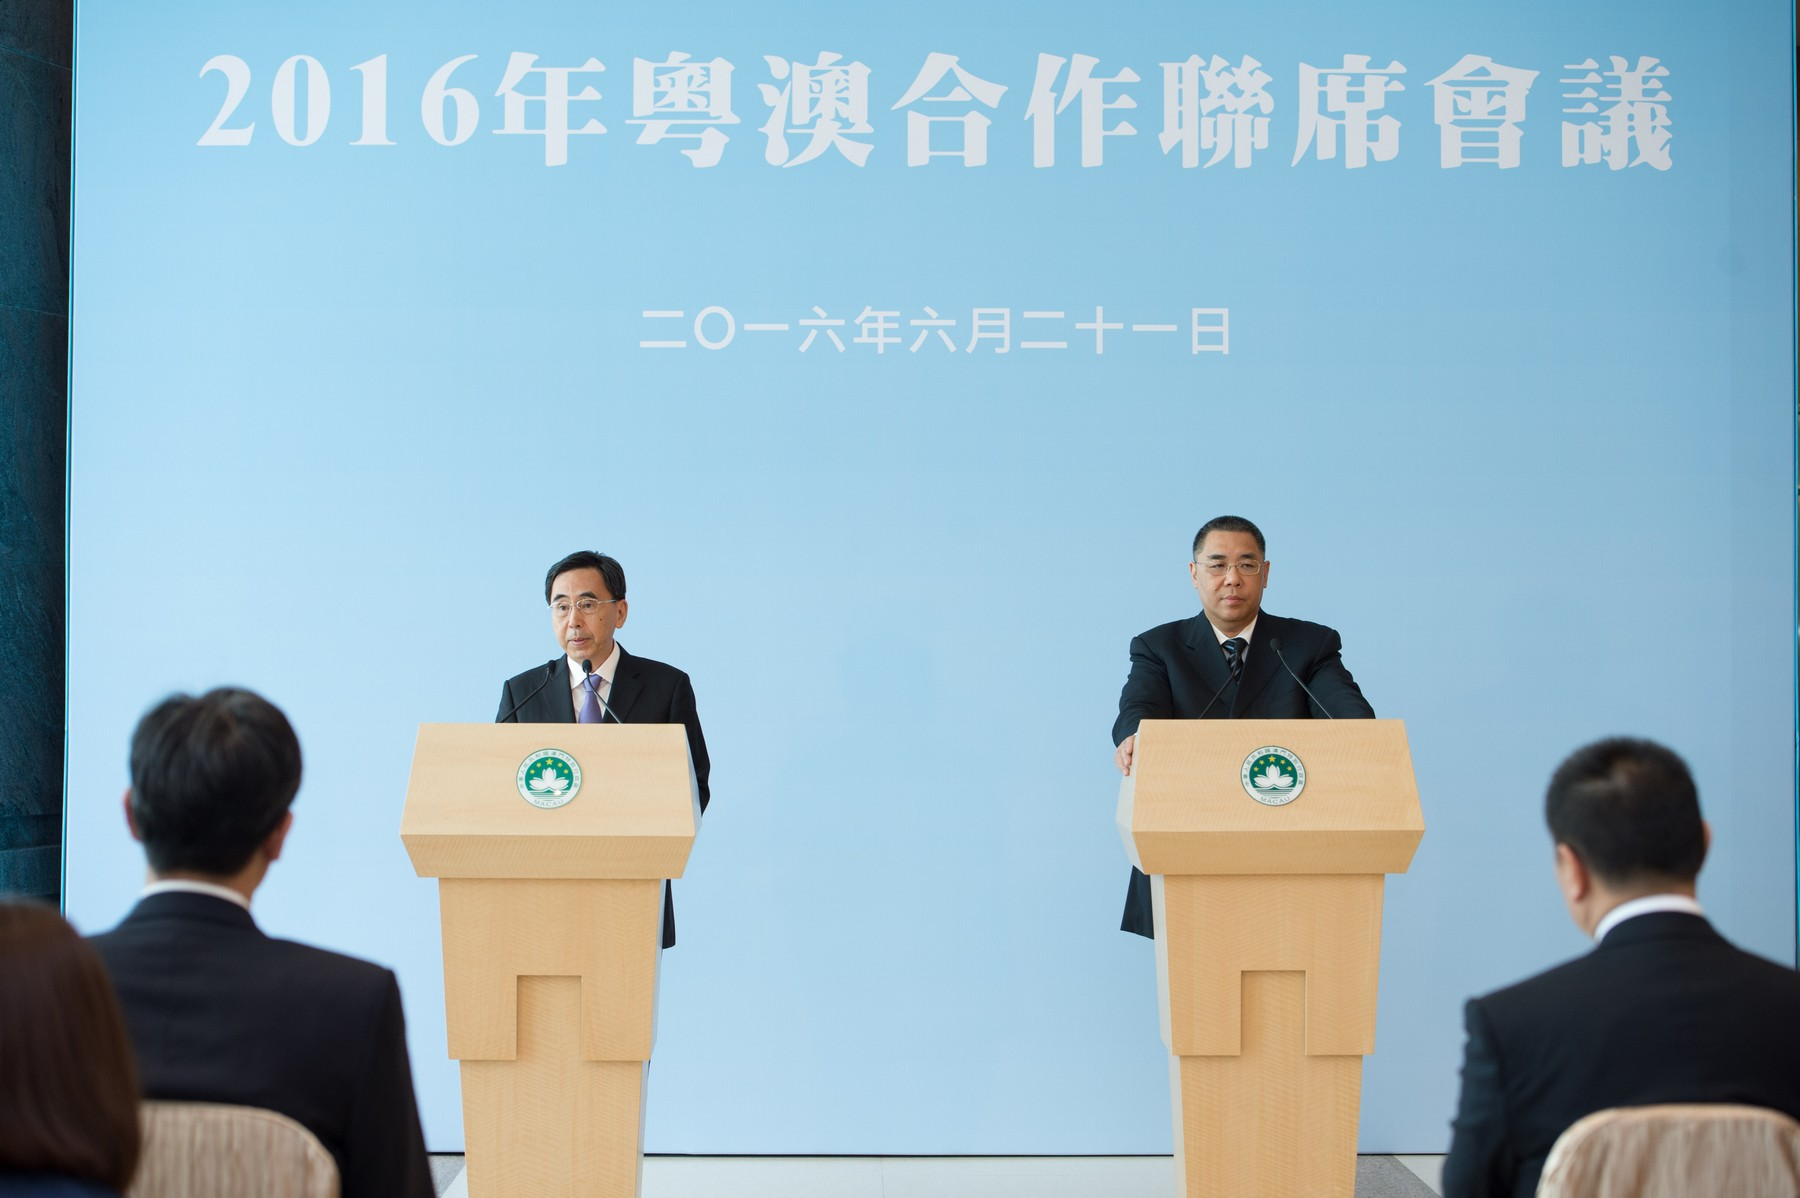 Macau government co-operates with Guangdong on 'One Belt, One Road'